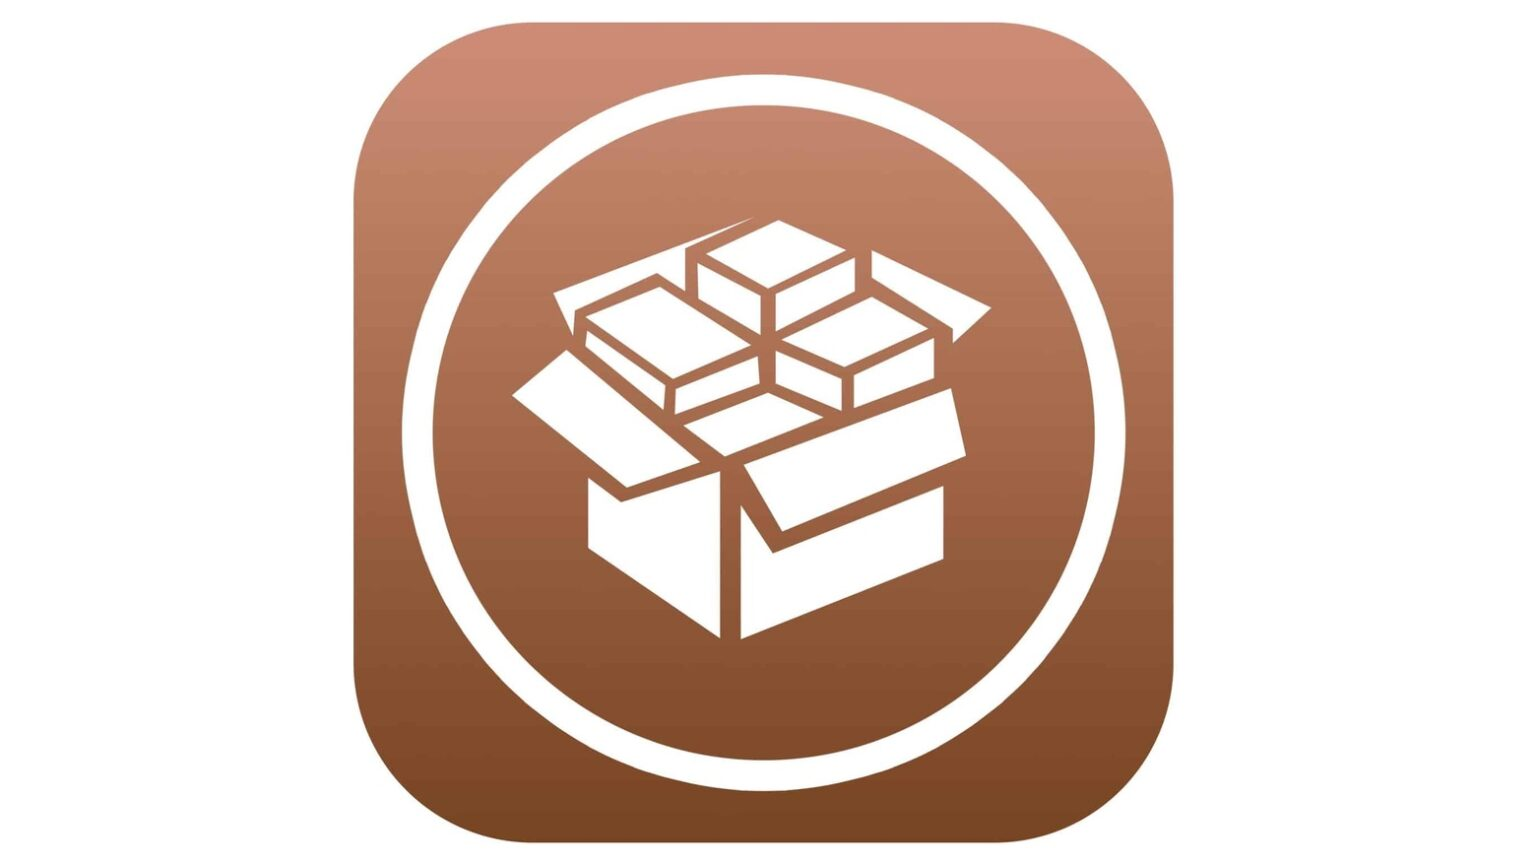 Cydia was critical when iPhone jailbreaking was popular